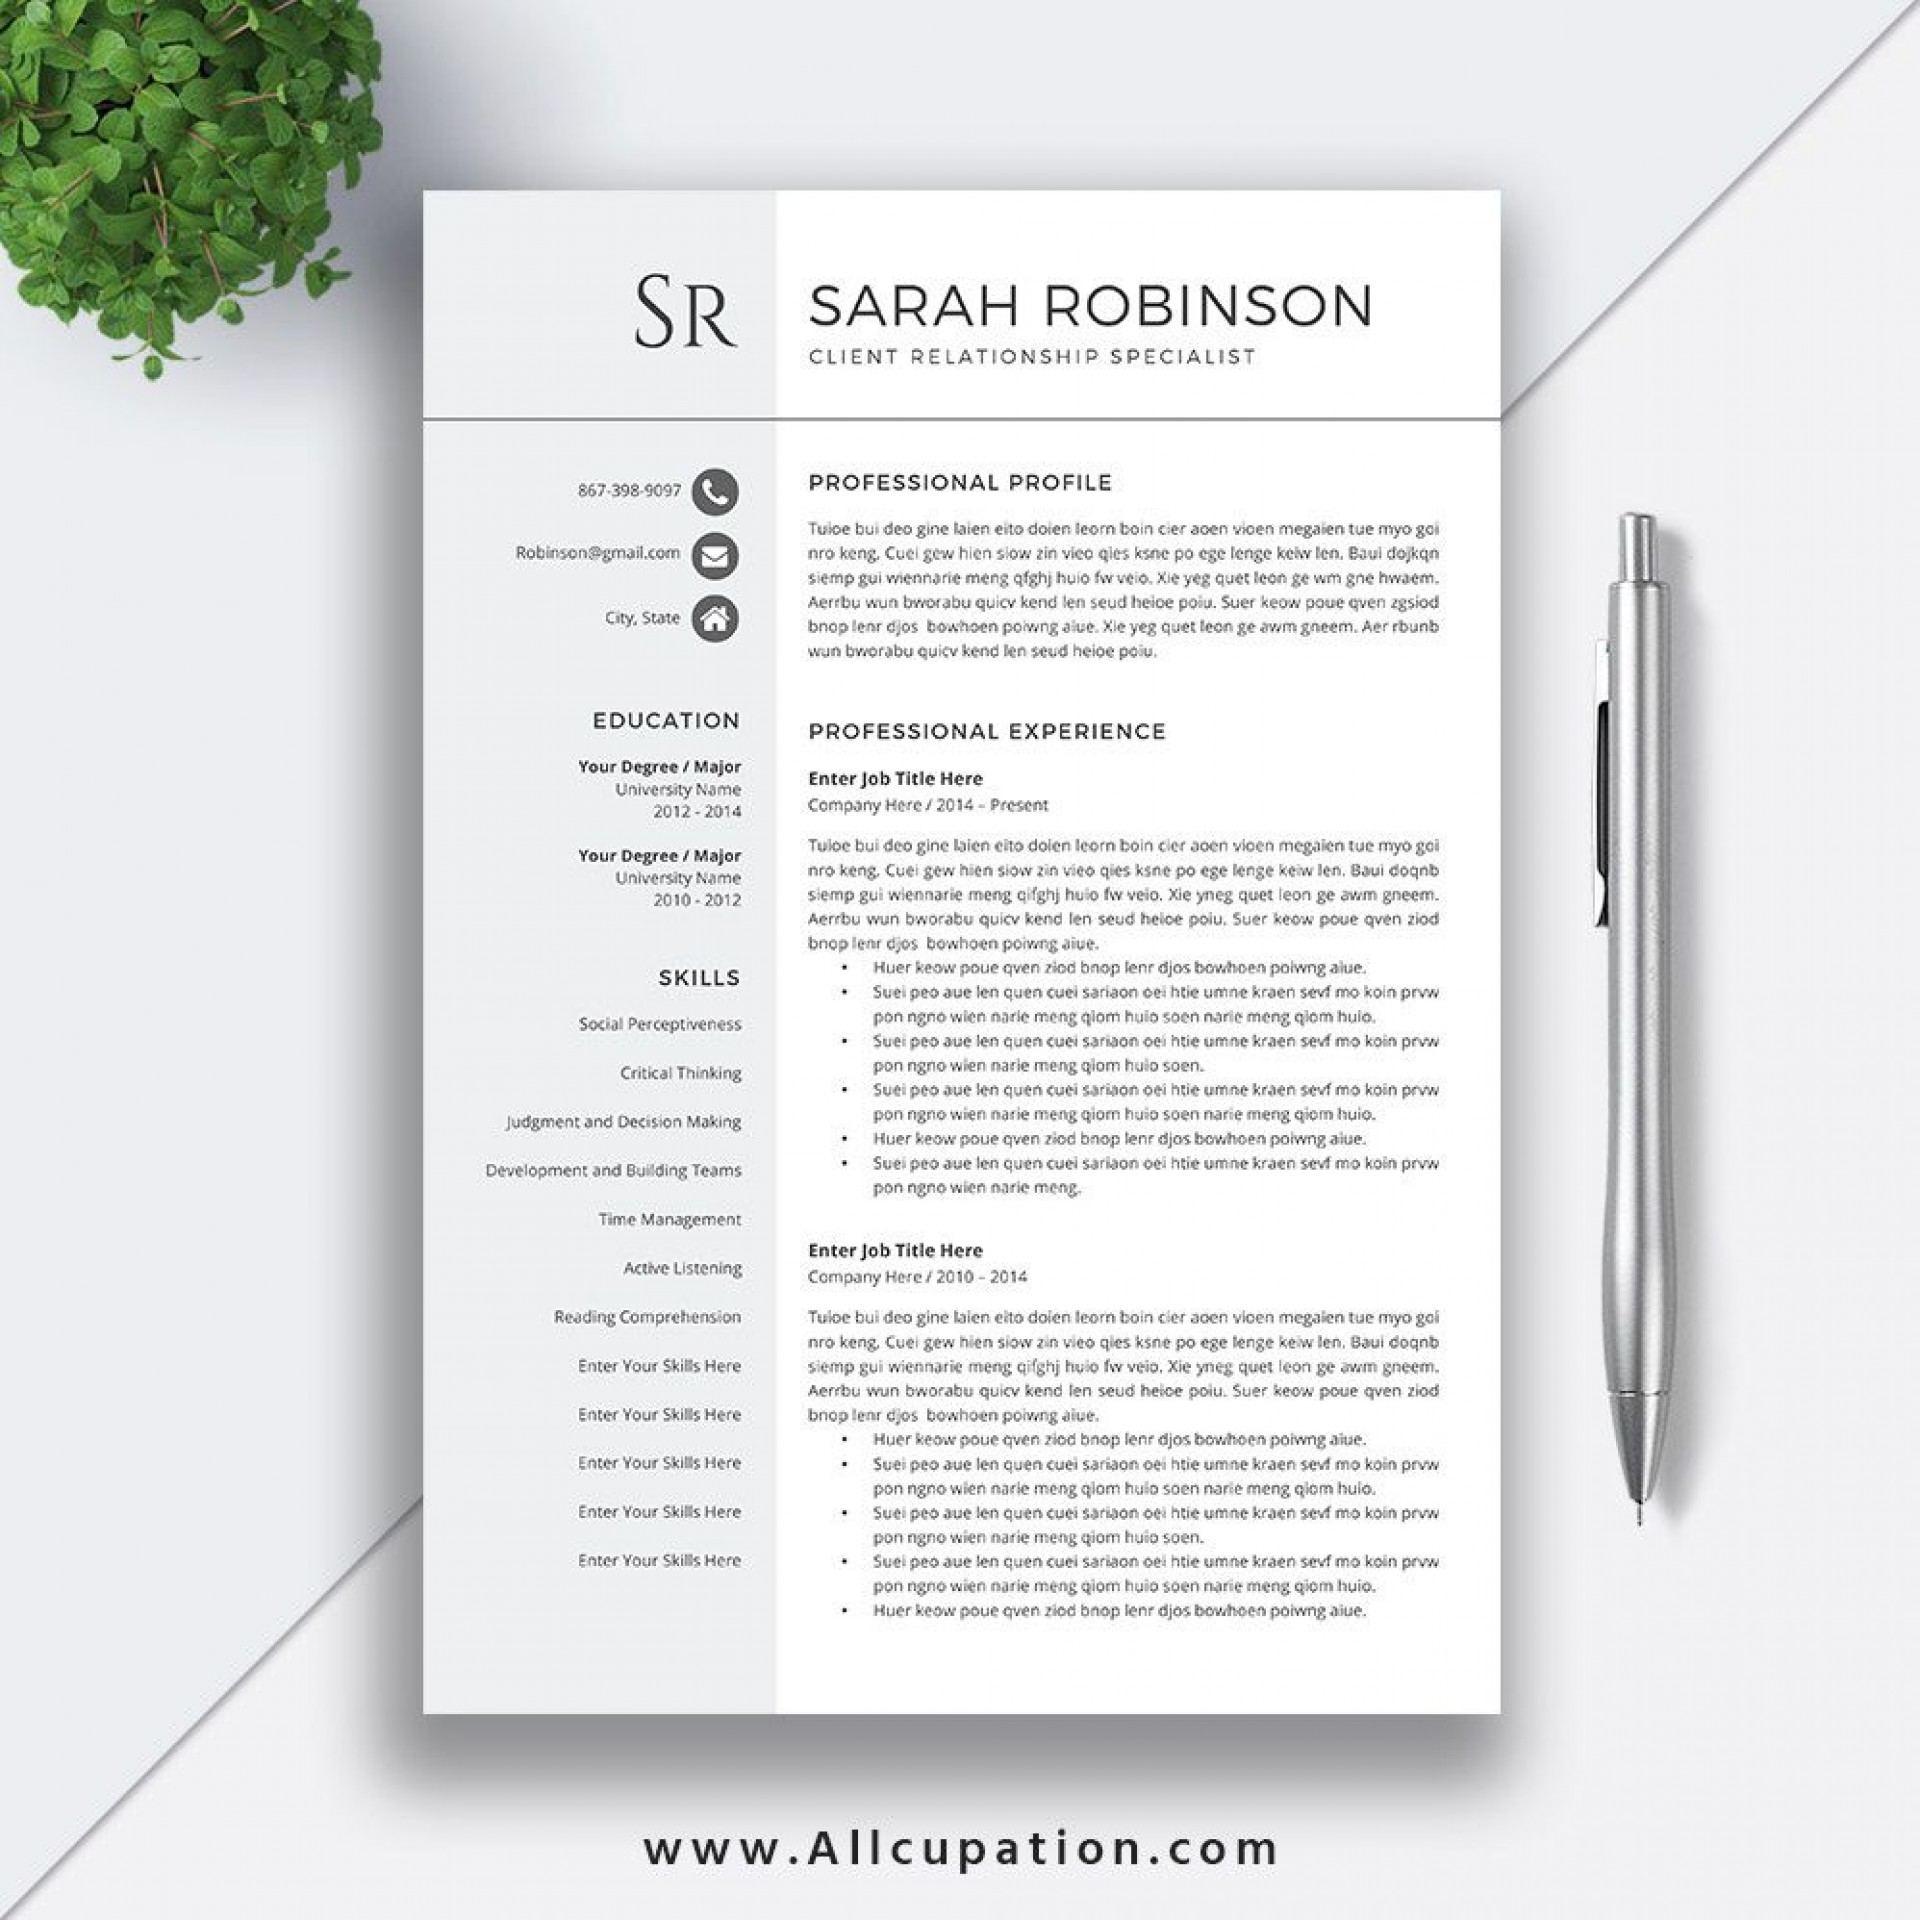 007 Sensational Simple Professional Cv Template Word High Def 1920